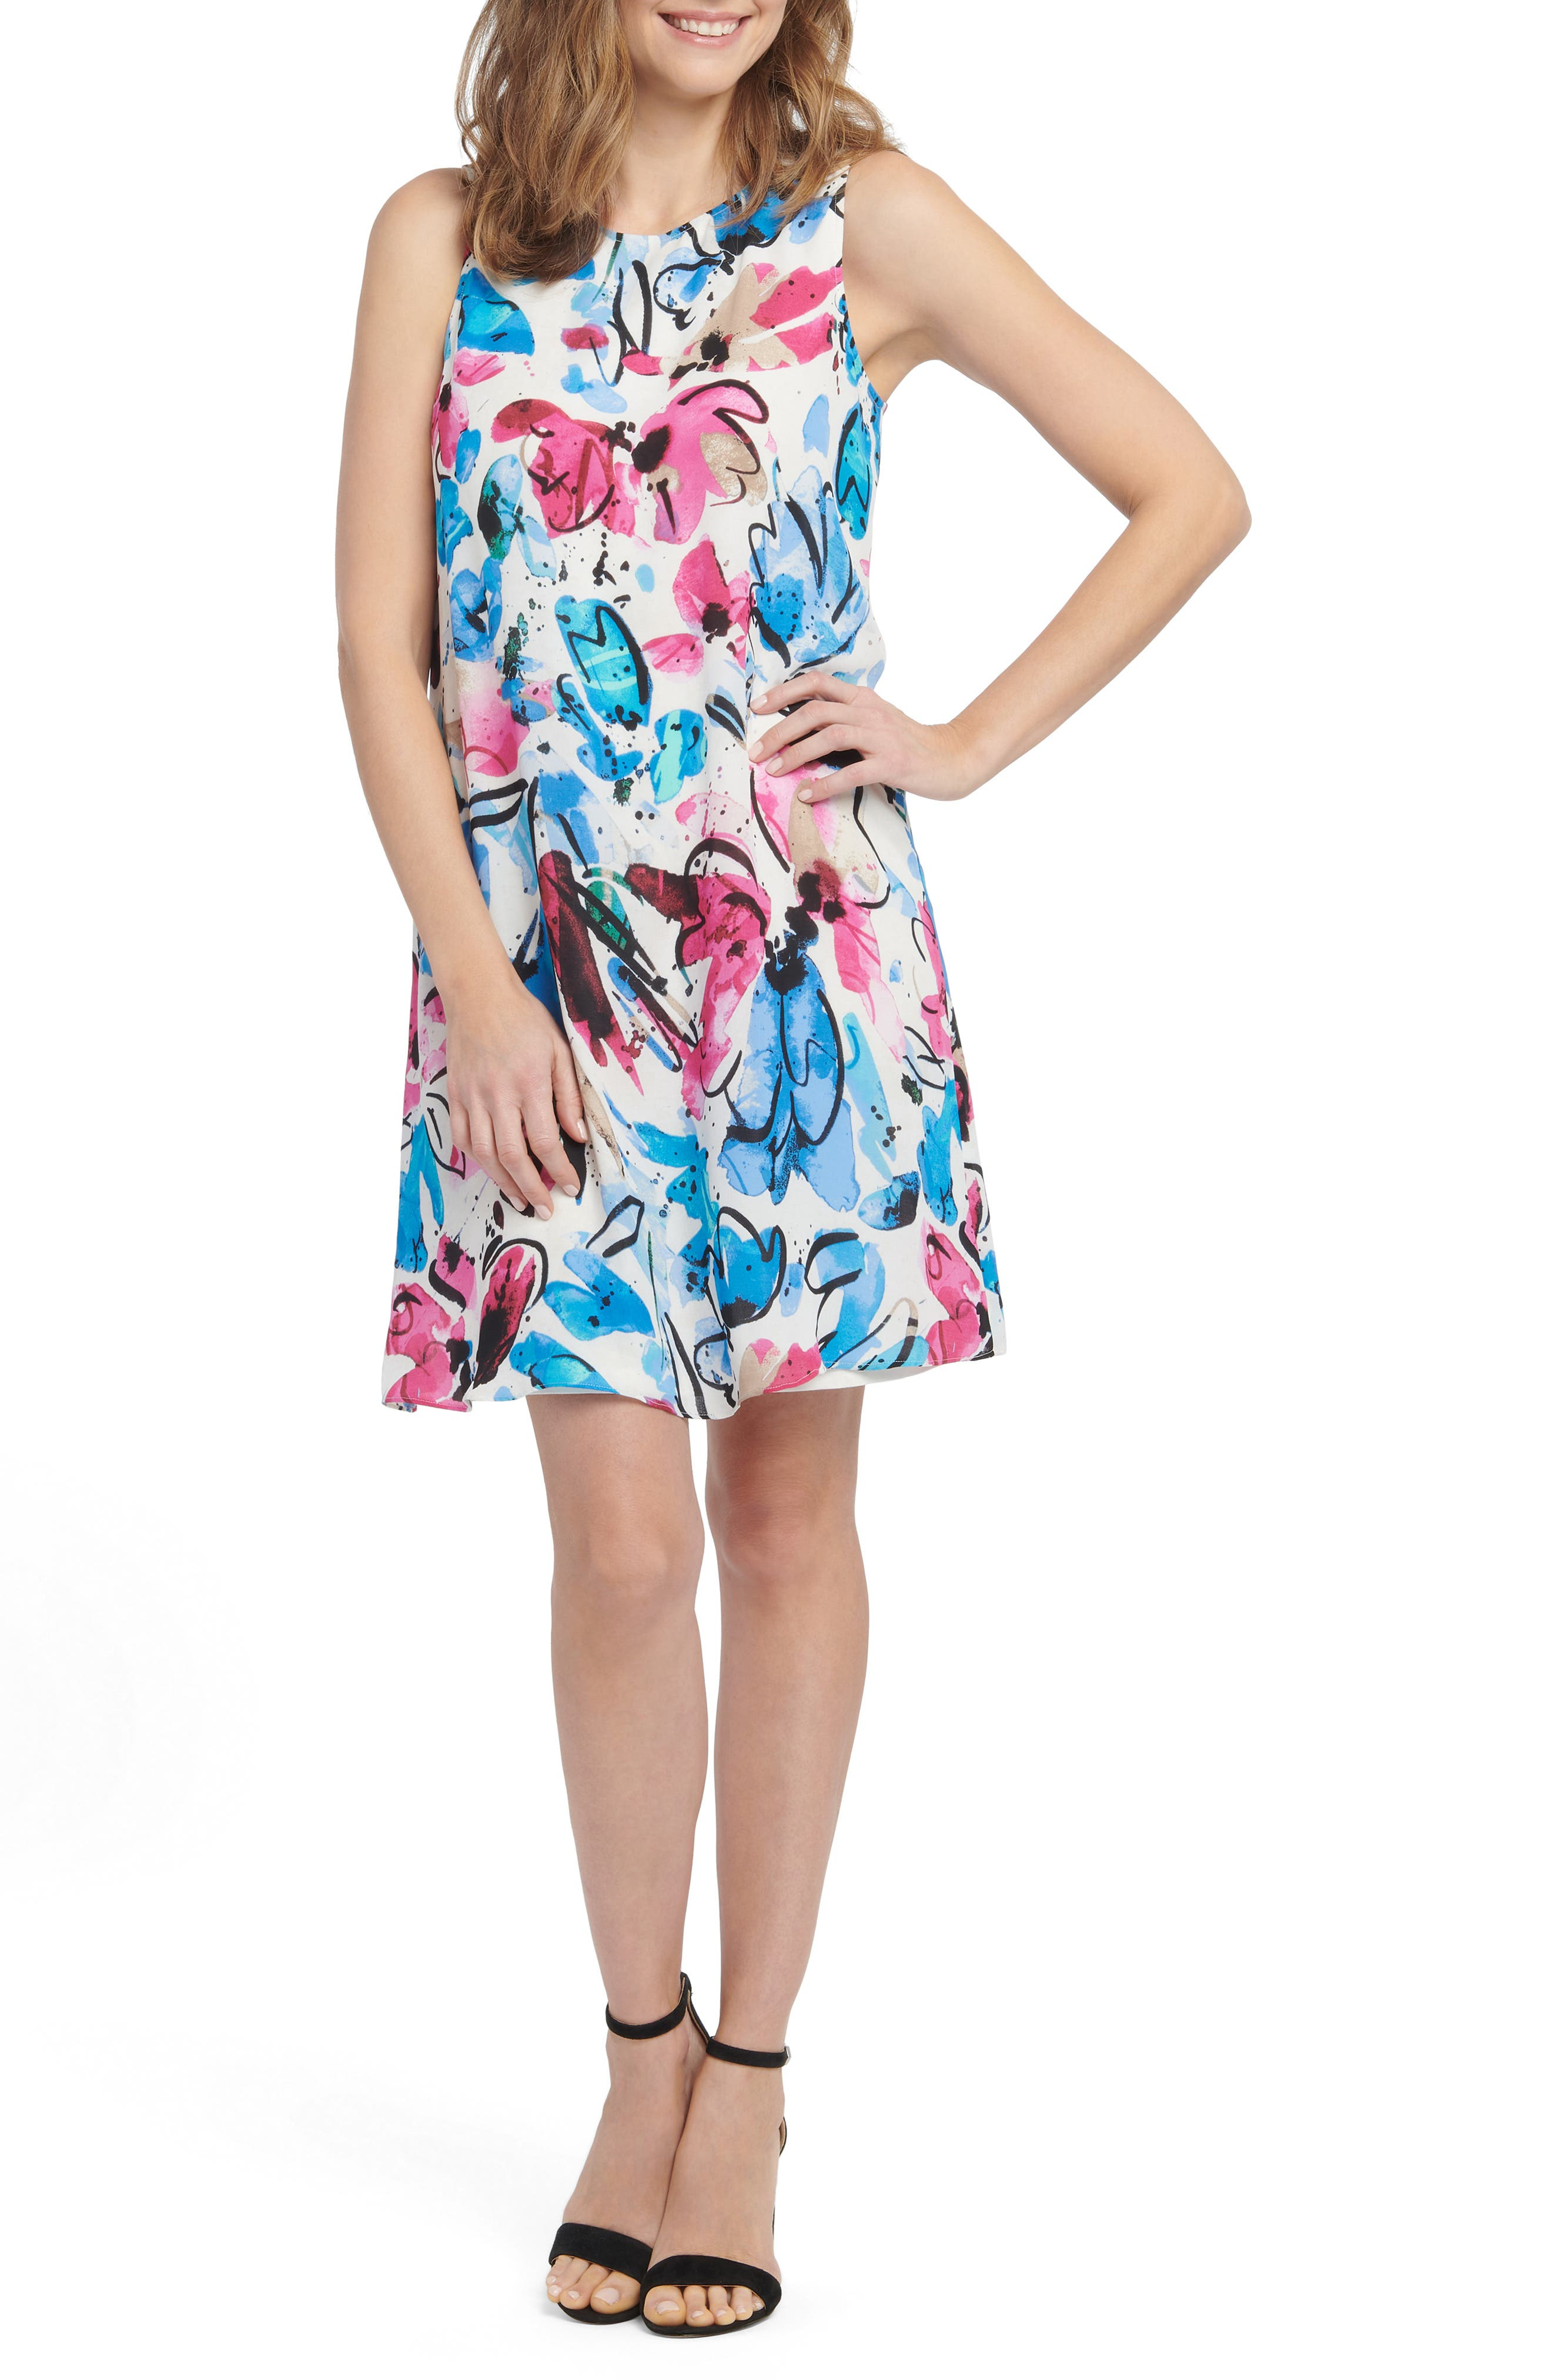 Brushstroked florals in a vibrant collection of colors enliven this summery dress that\\\'s all set for summery fun. Style Name: Nic+Zoe Vibrant Flora Sleeveless A-Line Dress (Regular & Petite). Style Number: 5966788. Available in stores.